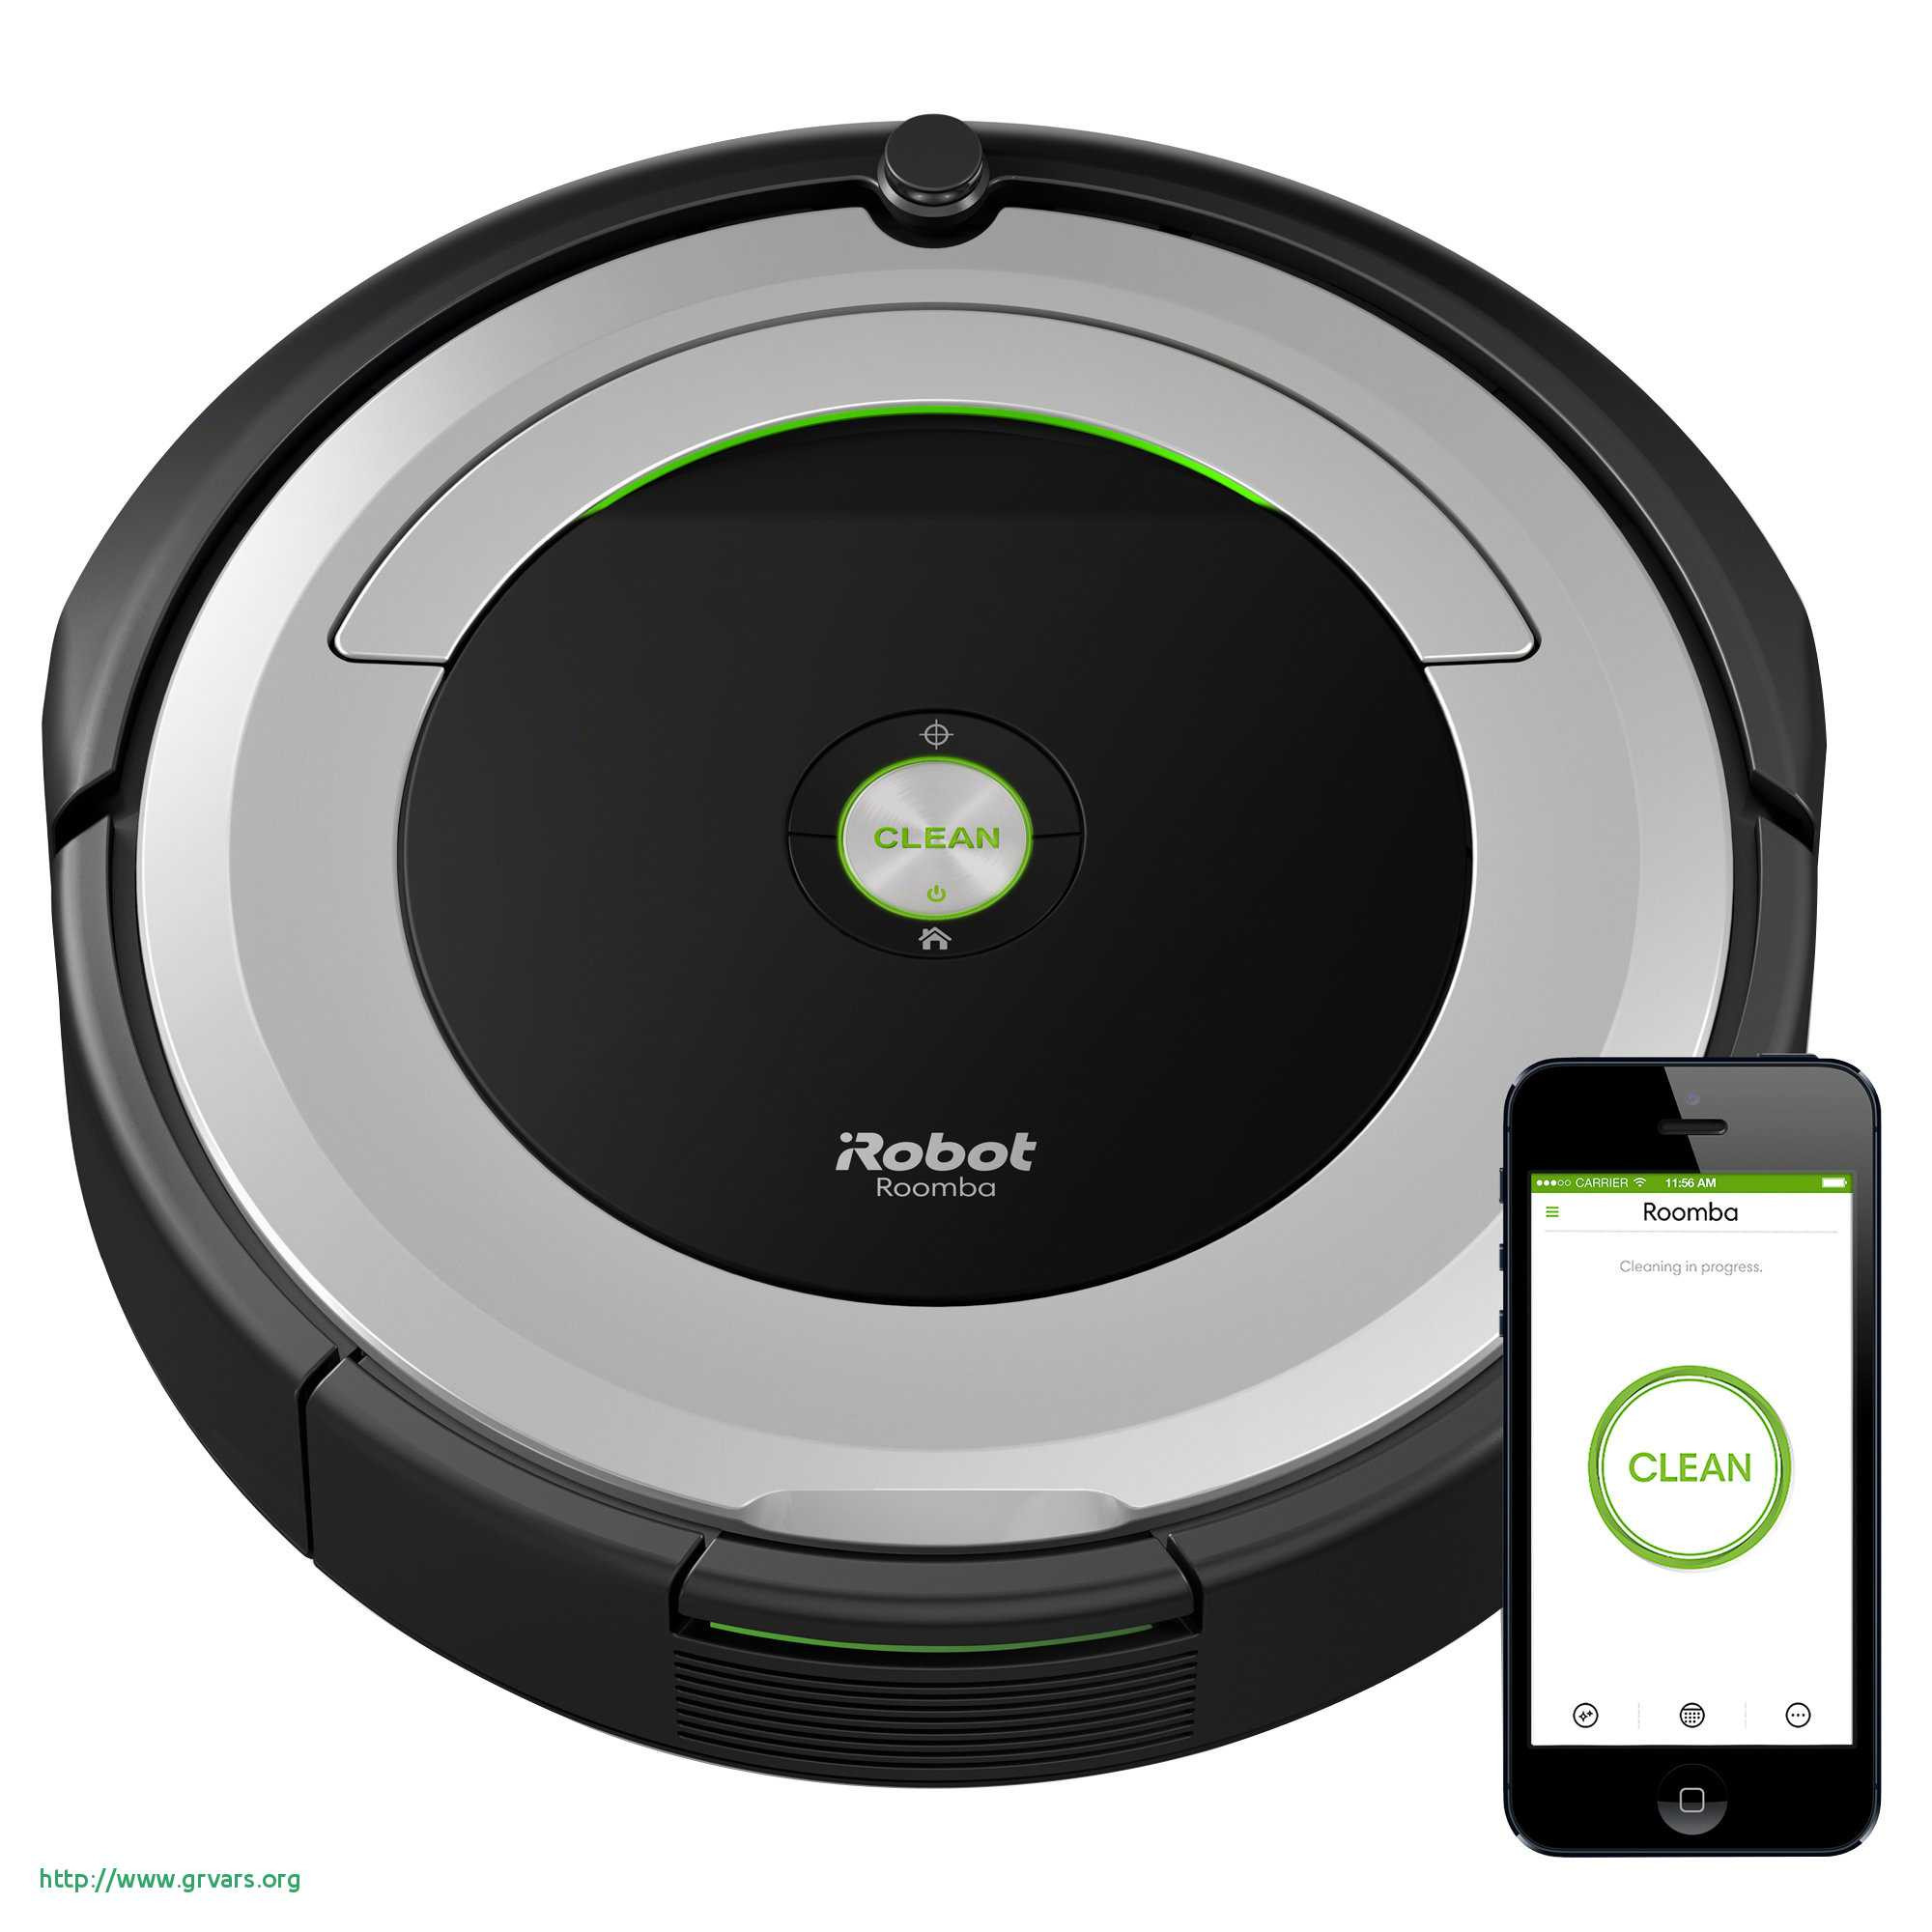 automatic vacuum for hardwood floors of 21 luxe roomba hard floor cleaner ideas blog throughout roomba hard floor cleaner charmant irobot roomba 690 robotic vacuum